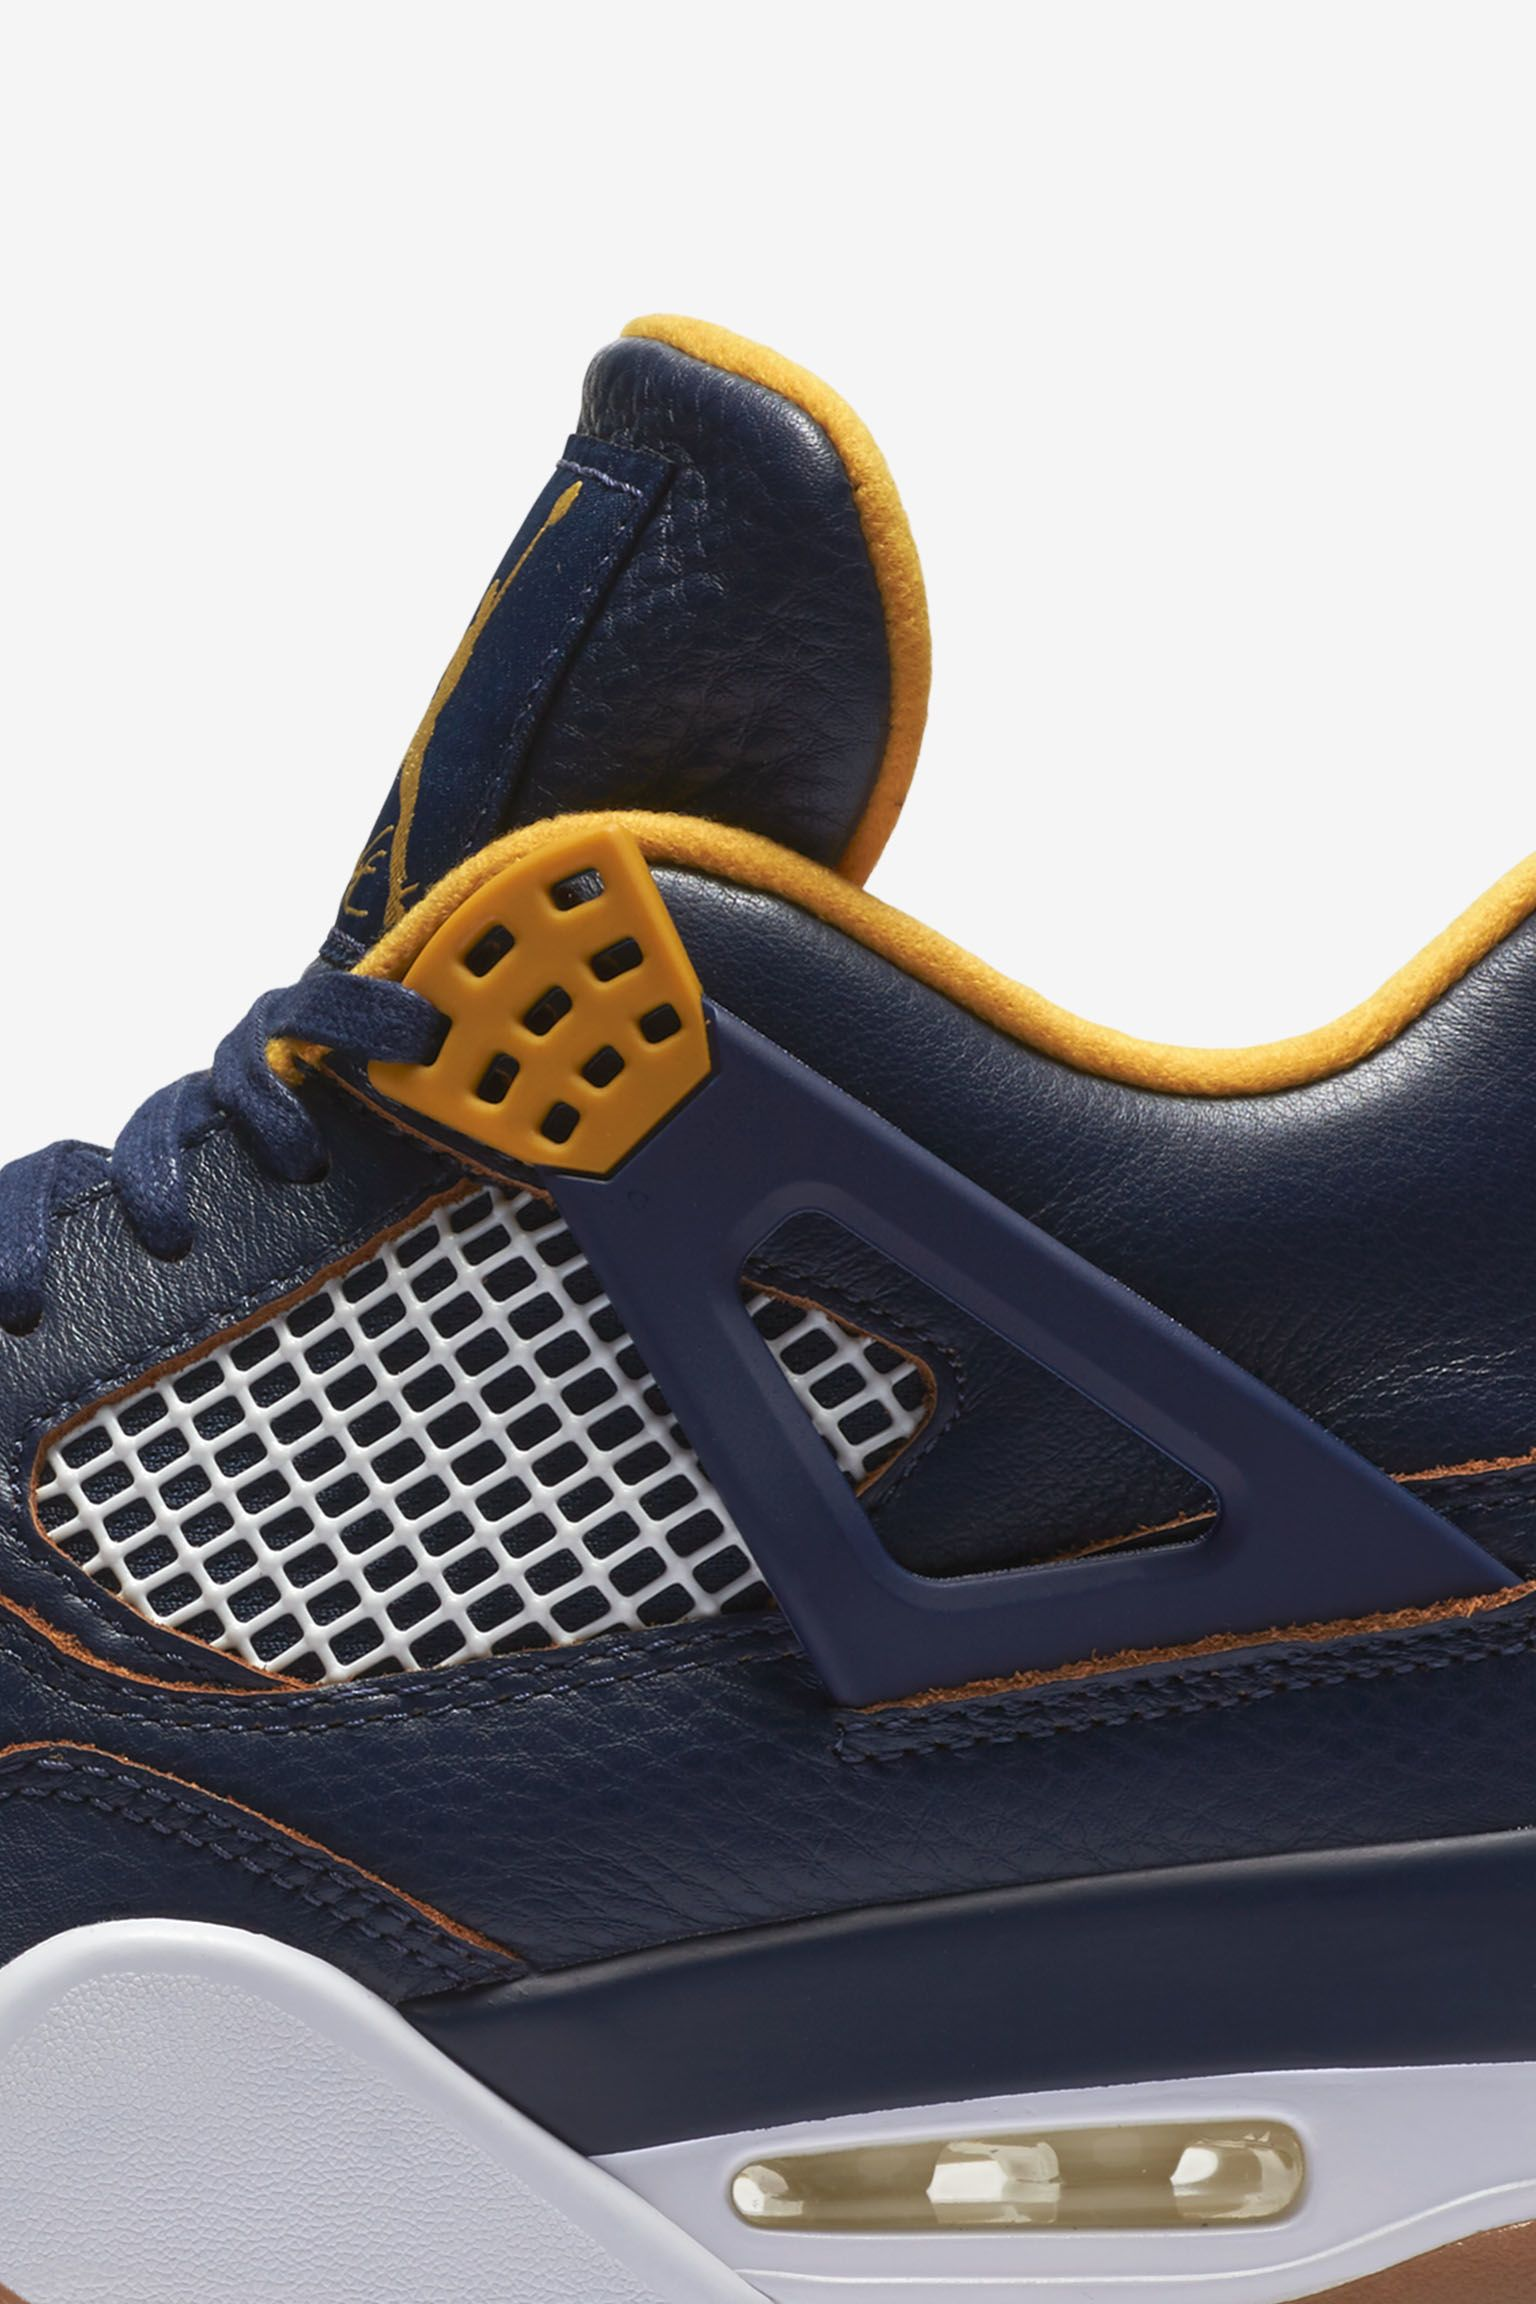 Air Jordan 4 Retro 'Dunk From Above' Release Date